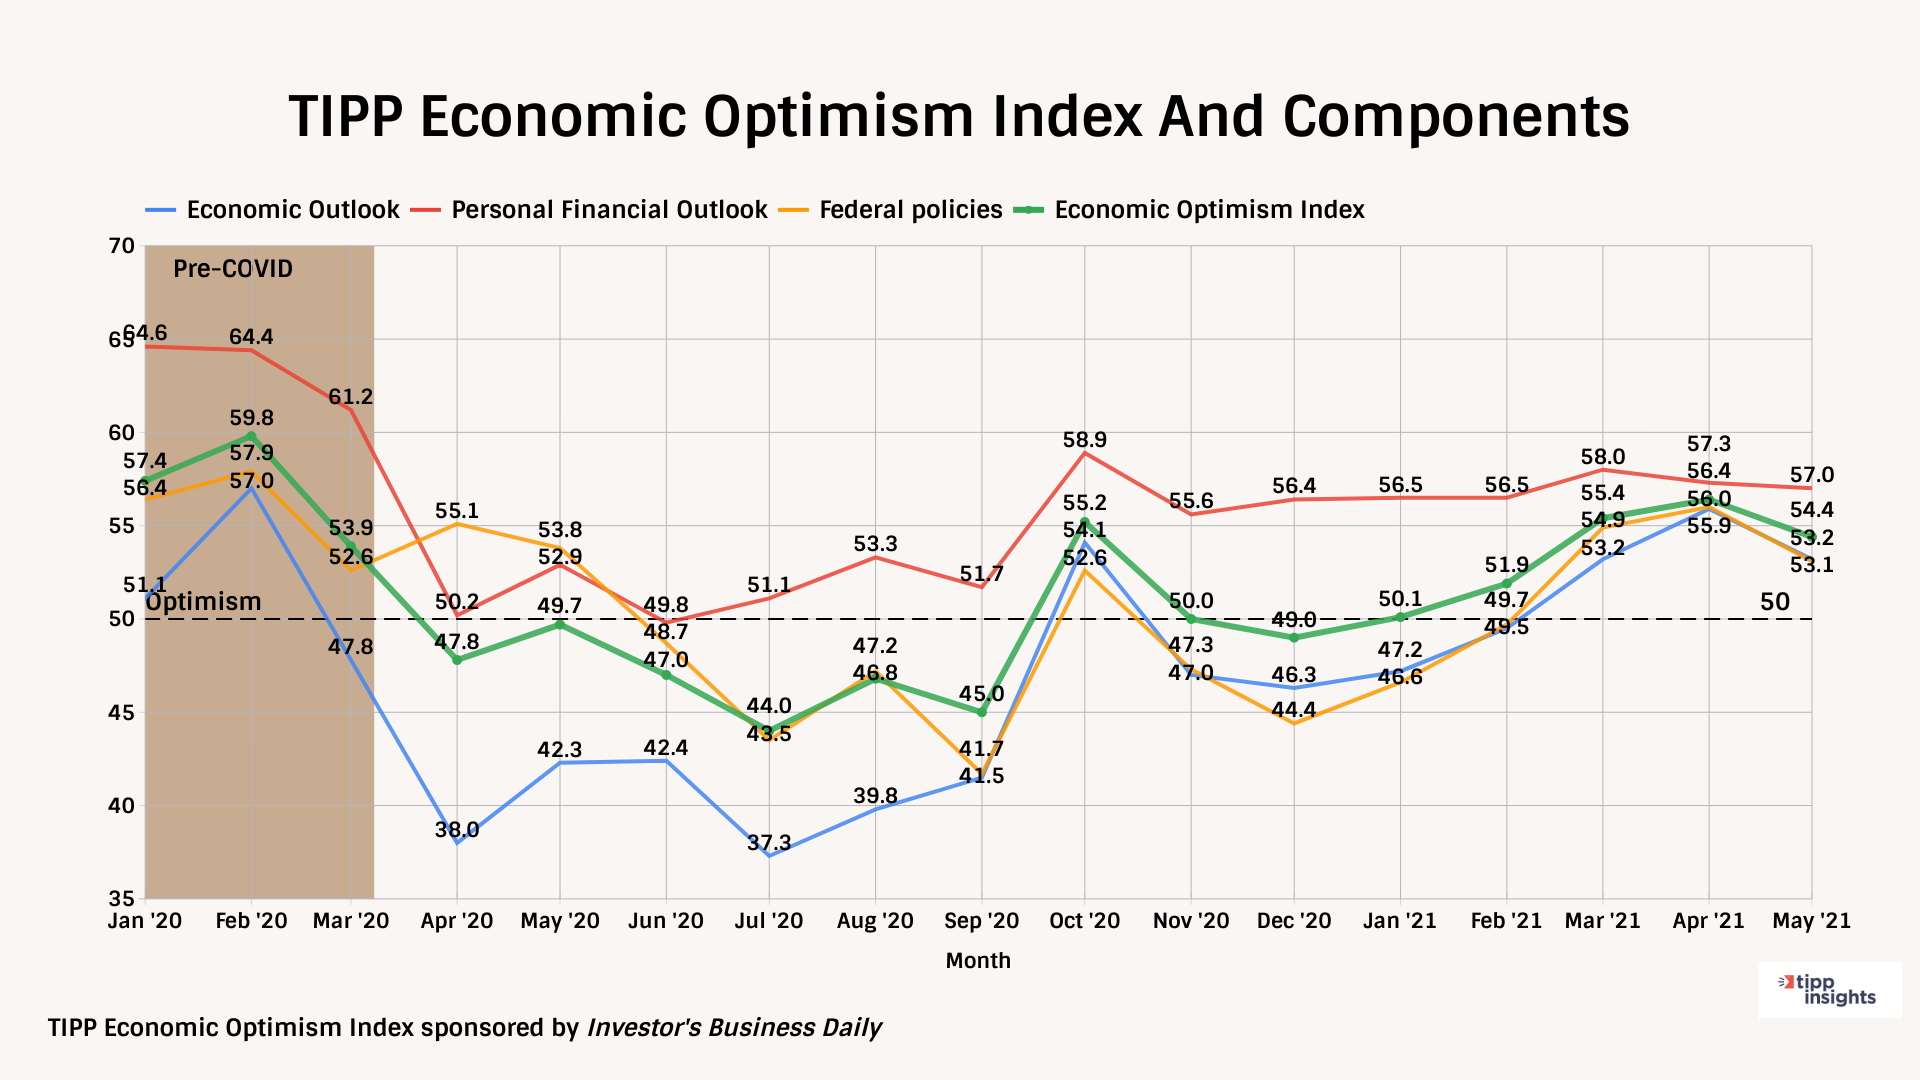 TIPP Economic Optimism Index And Components Monthly Tracking Chart